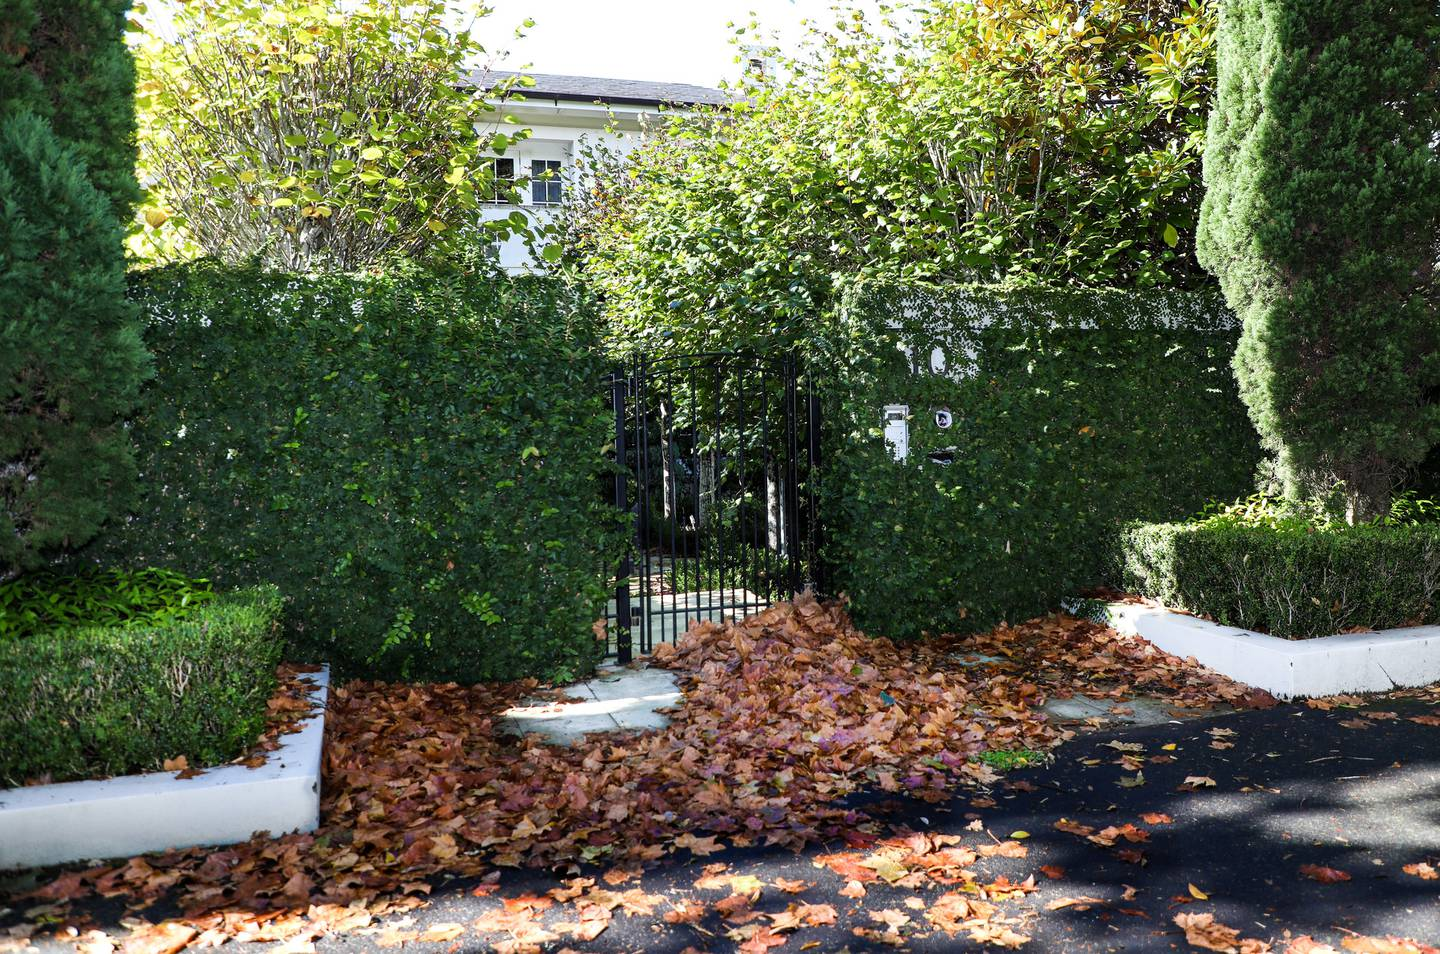 Sir John Key's former home has become a collection point for Autumn leaves in an otherwise well kept street. Photo / Hayden Woodward